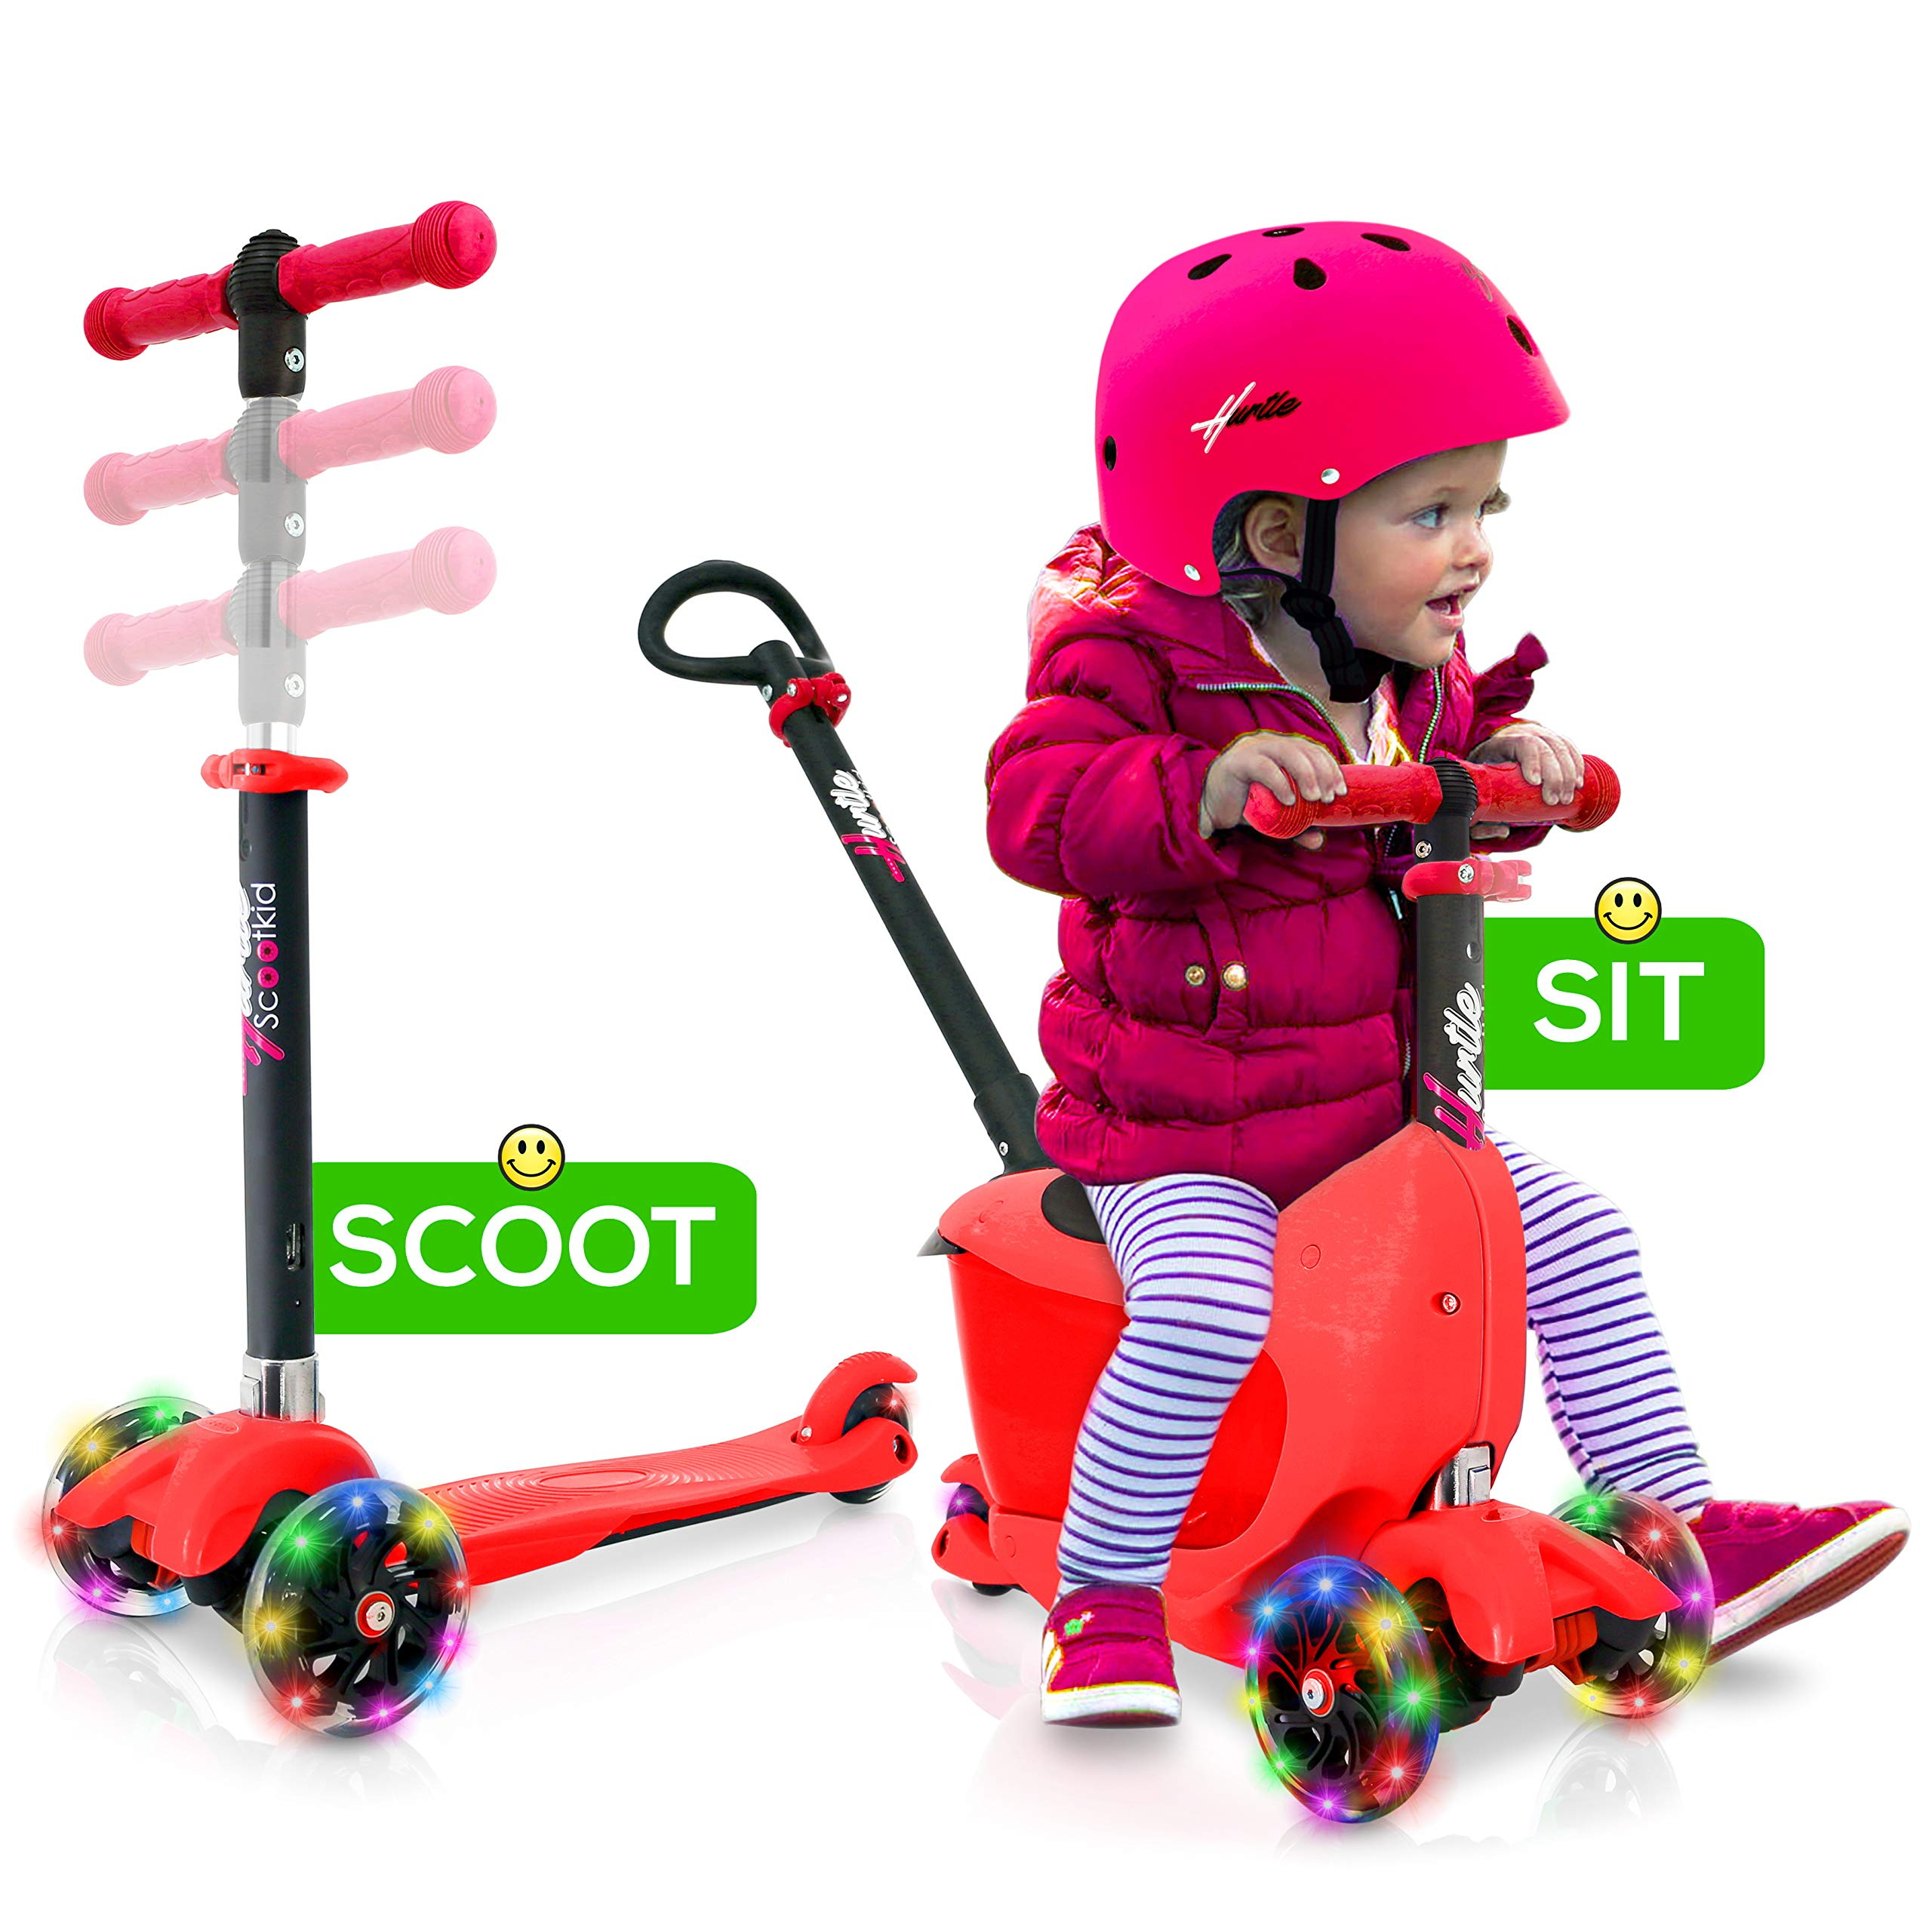 Hurtle 3 Wheeled Scooter for Kids - Child/Toddlers Toy Kick Scooter